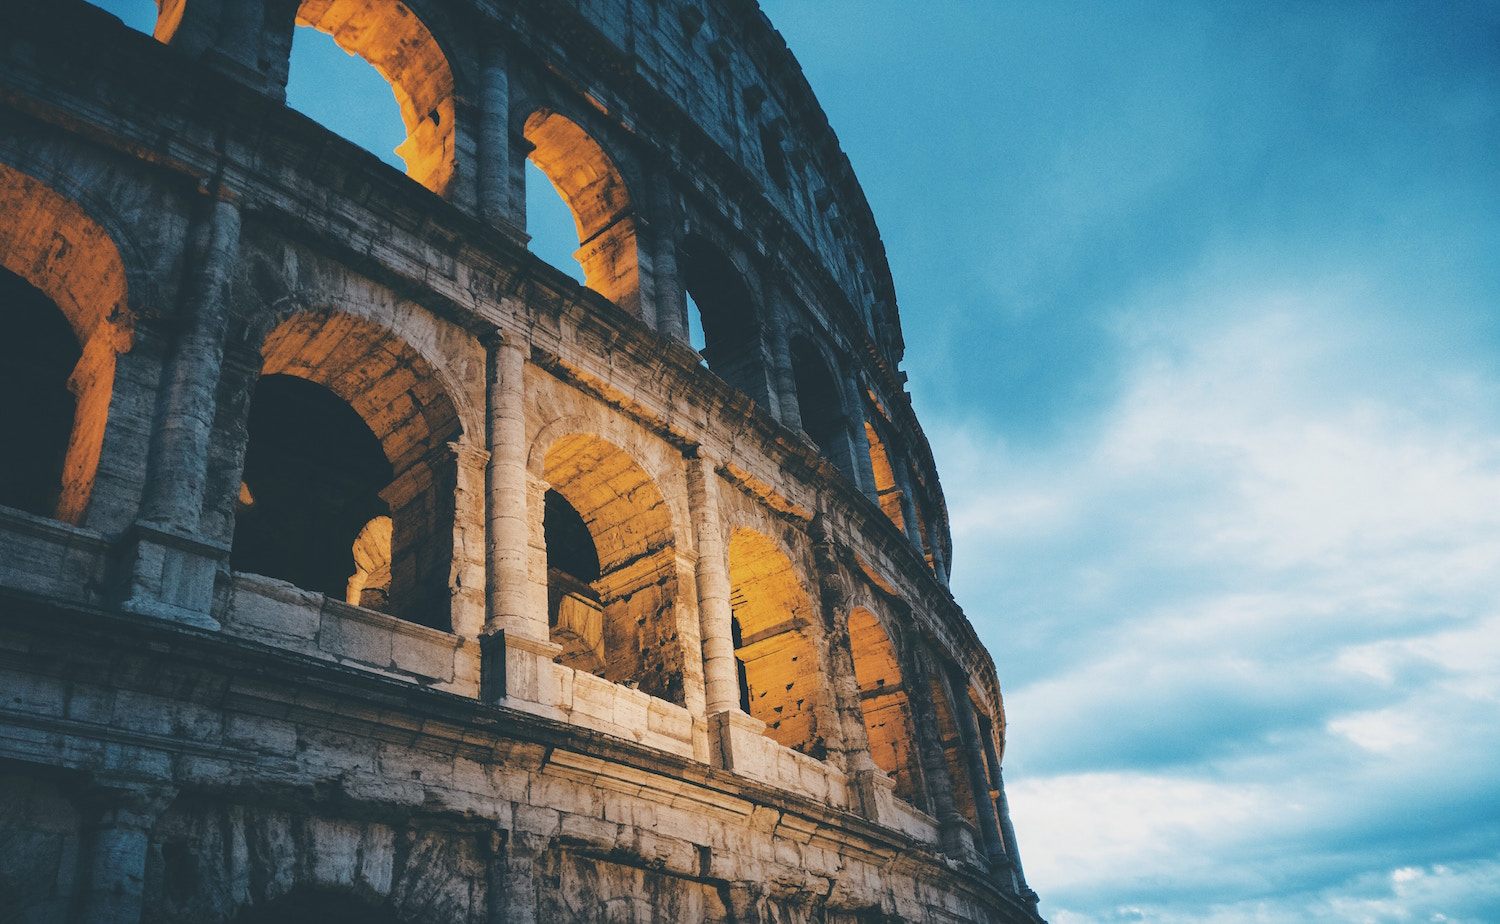 The Roman Republic lasted for hundreds of years before strong men turned it into an empire.